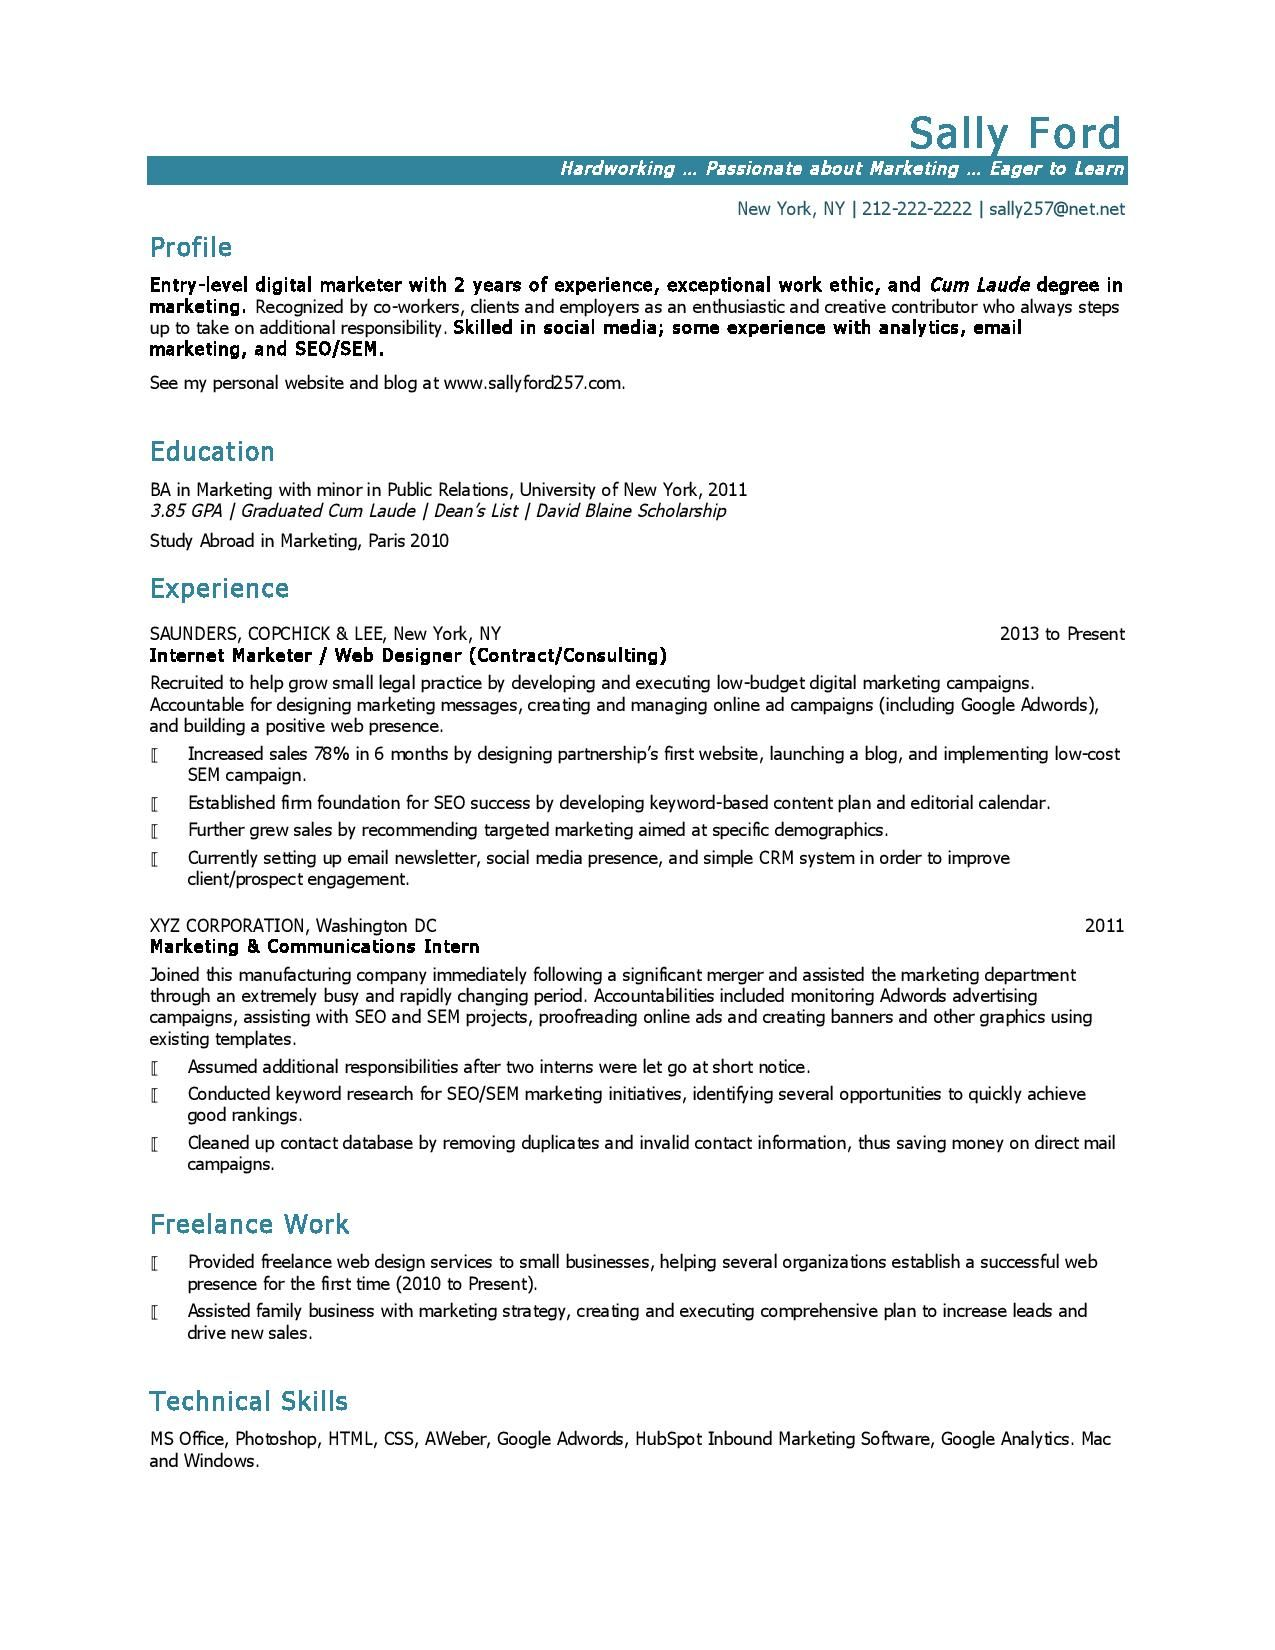 Marketing Resume Template Marketing Resume Samples Hiring Managers Will Notice  Home Design